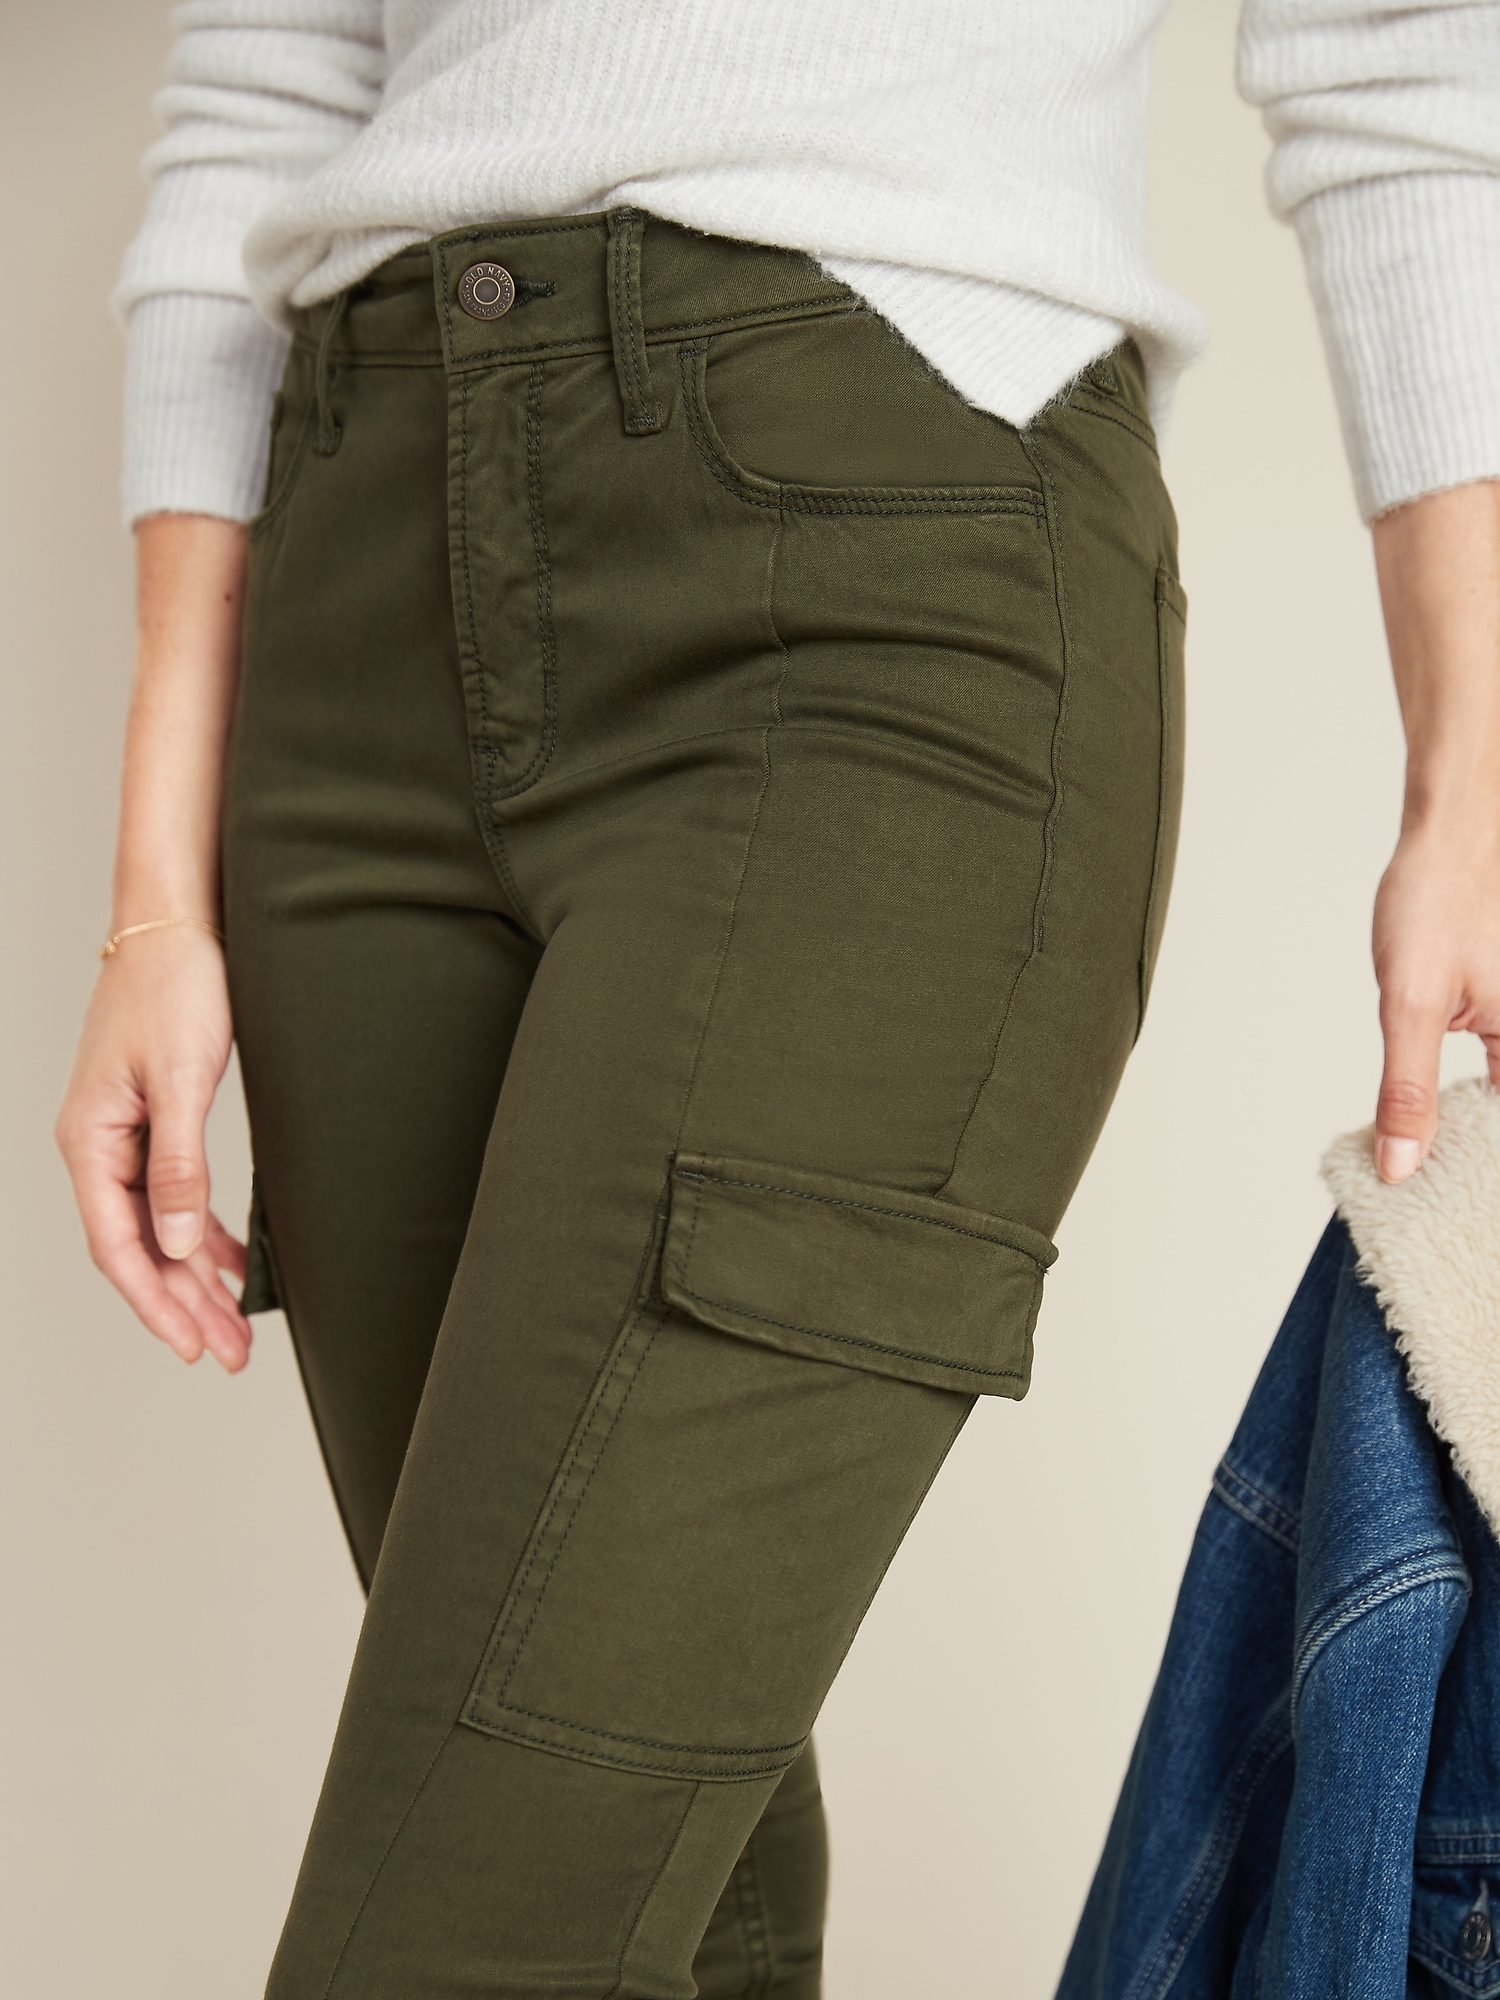 High Waisted Sateen Rockstar Super Skinny Cargo Pants For Women Old Navy